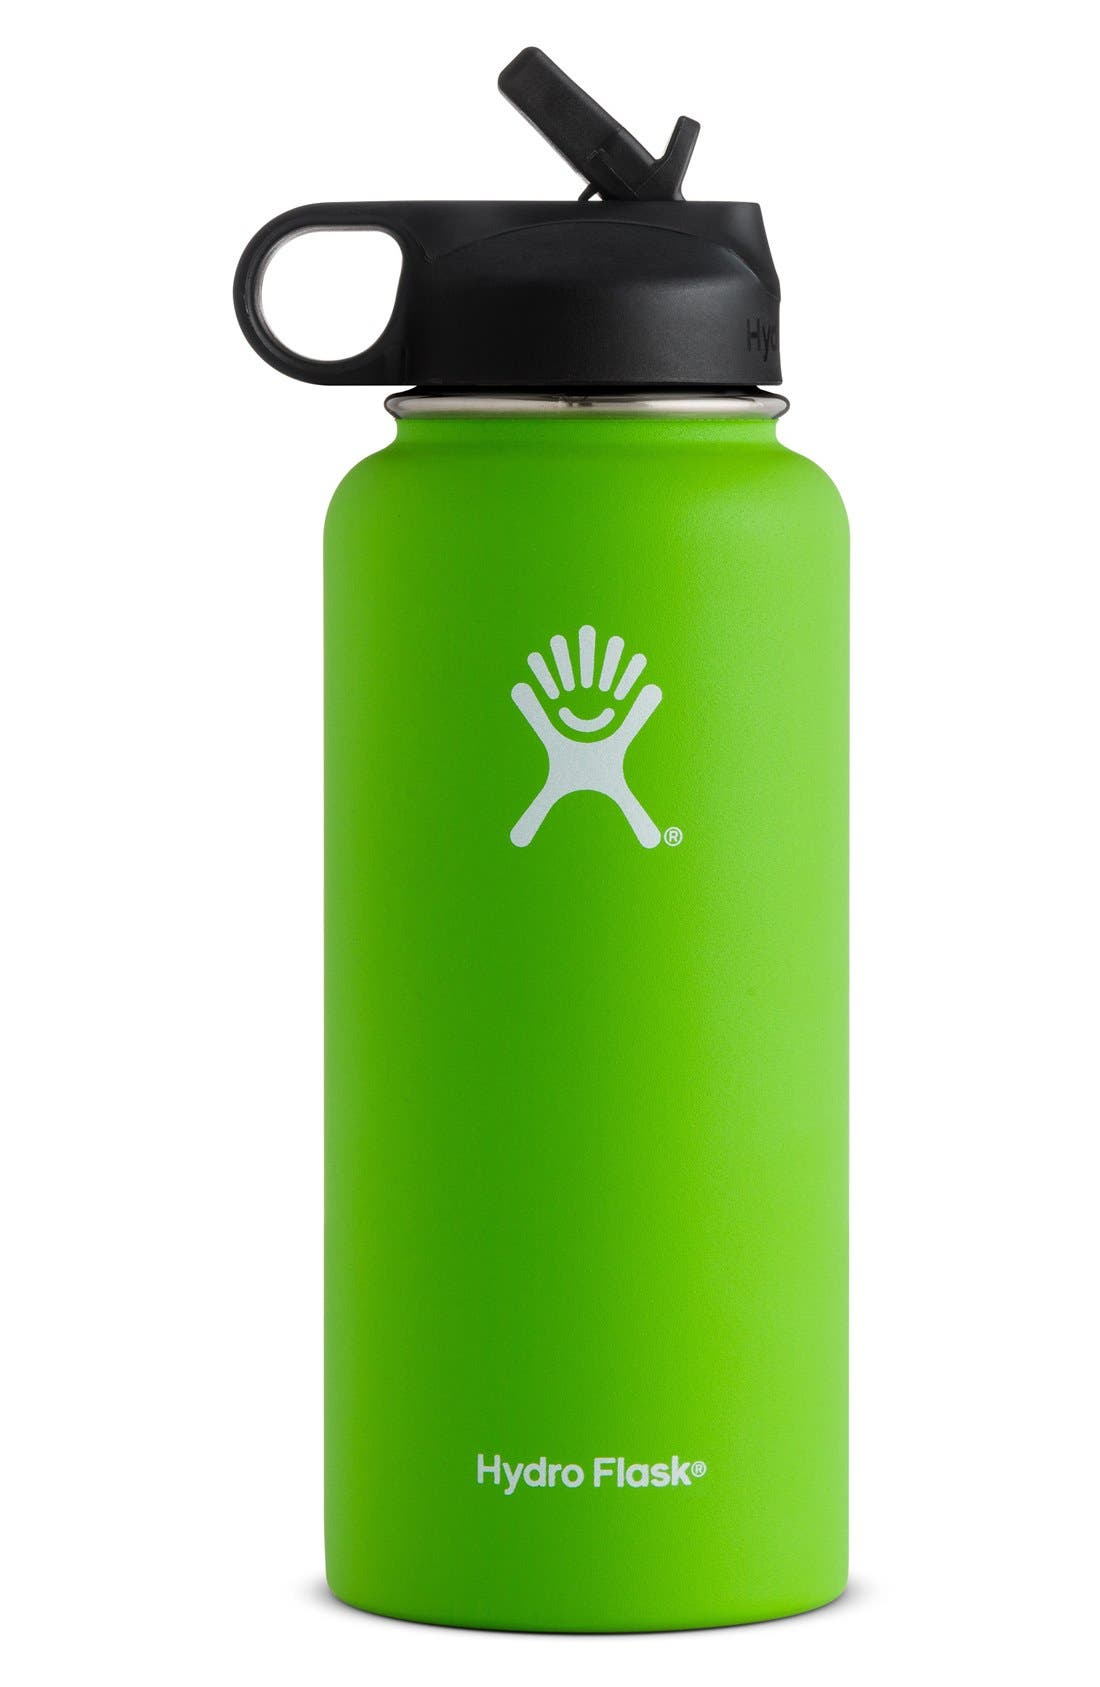 Alternate Image 1 Selected - Hydro Flask 32-Ounce Wide Mouth Bottle with Straw Lid